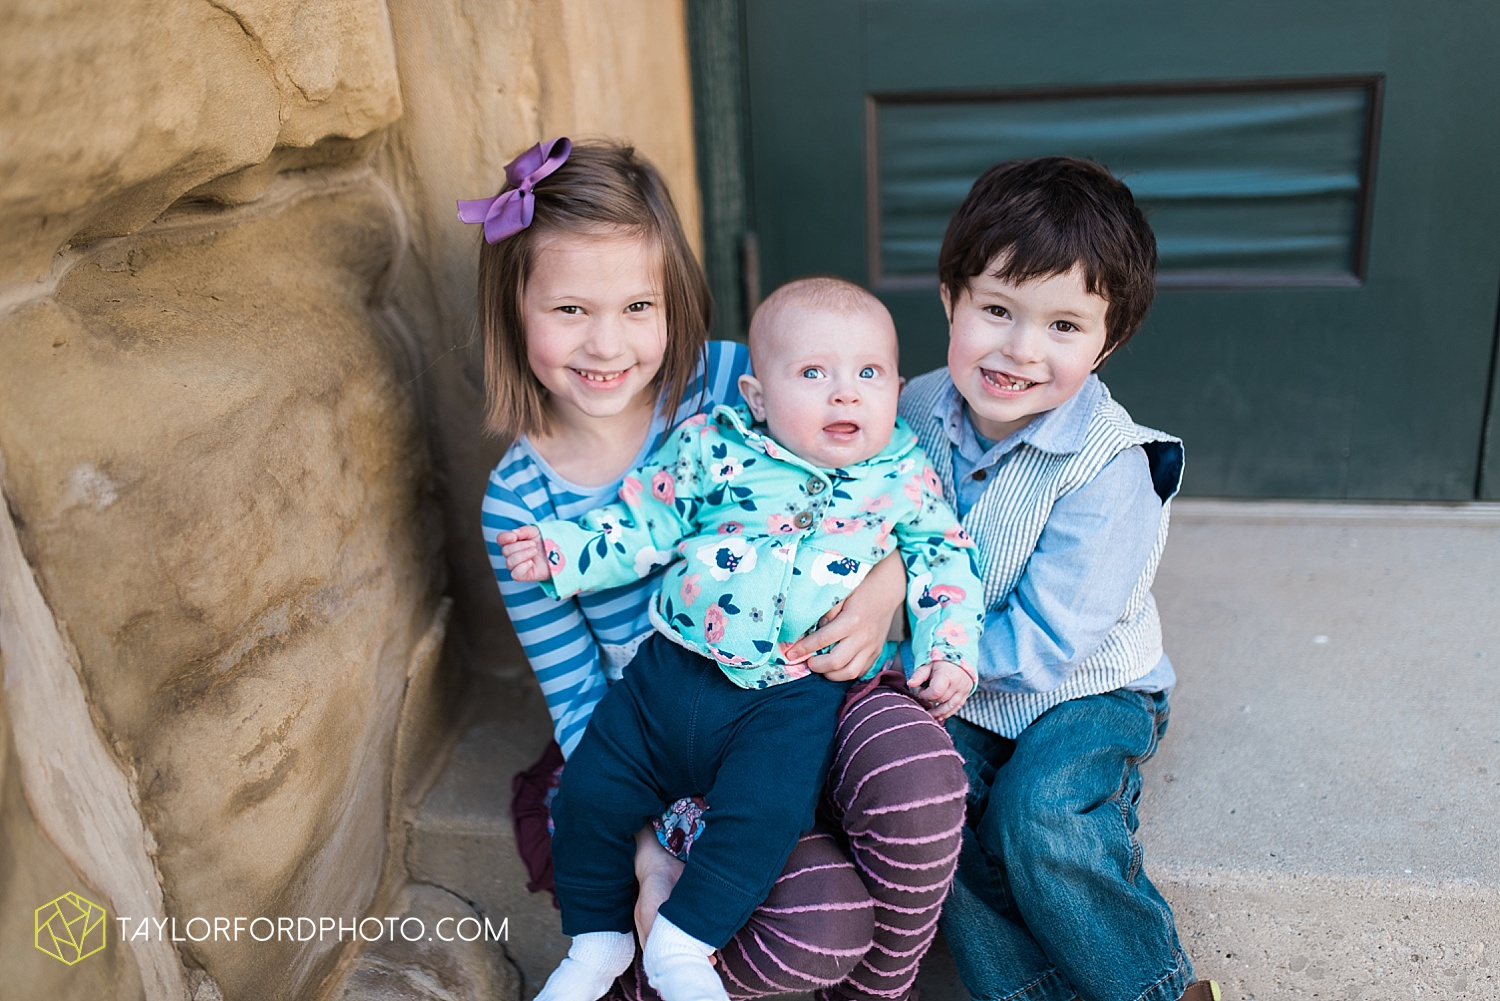 fort-wayne-indiana-family-photographer-taylor-ford-photography-van-wert-lima-ohio-soaff-park_1654.jpg